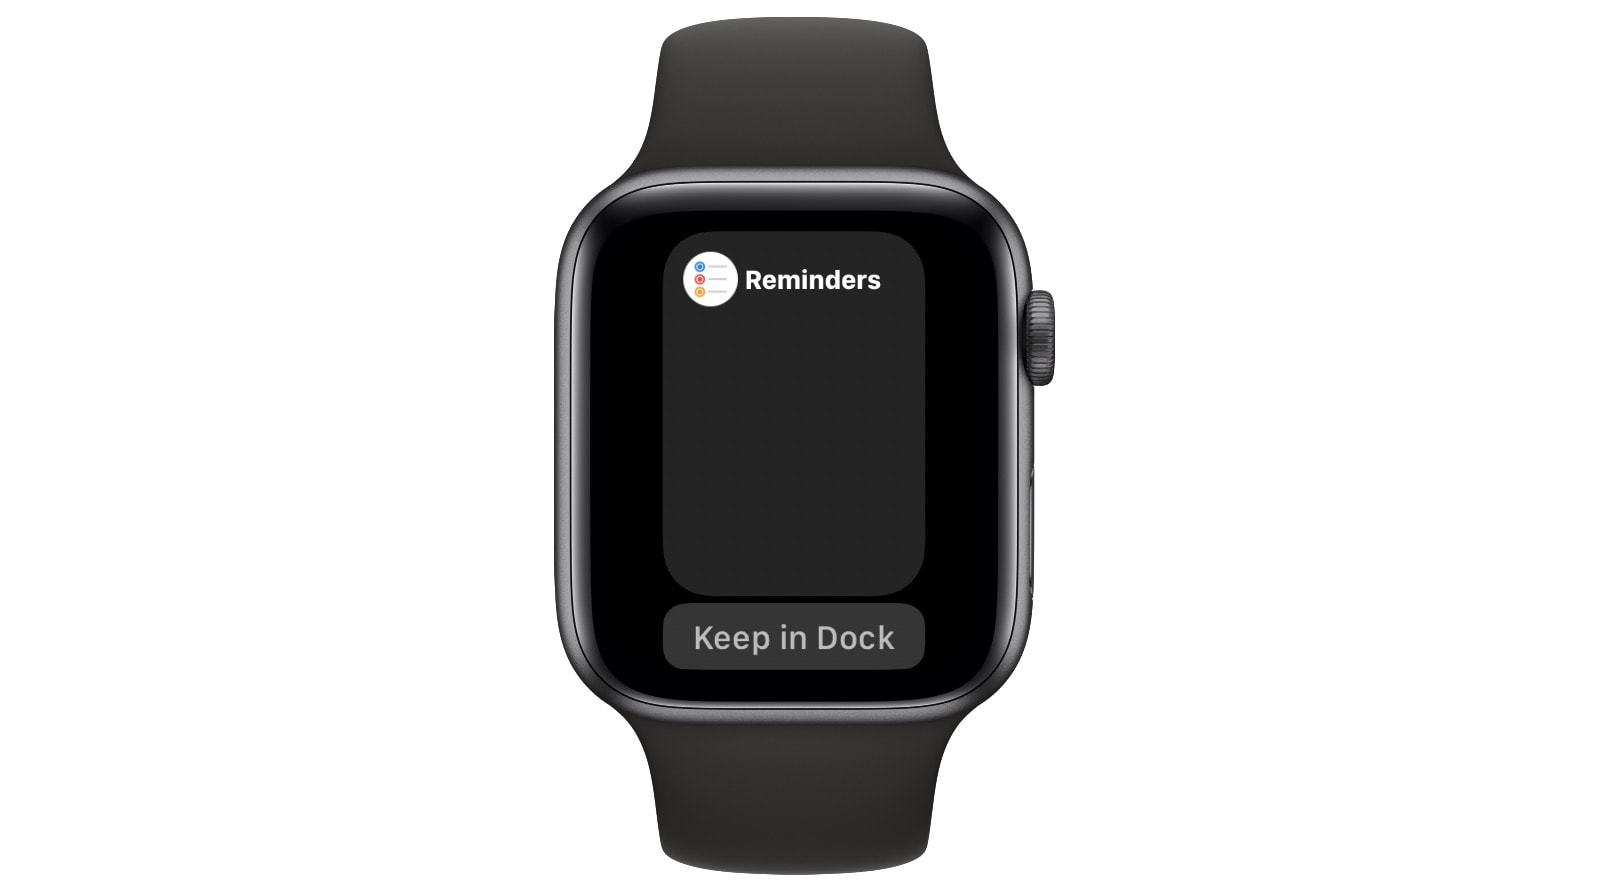 You also can add apps to the Dock on your Apple Watch.